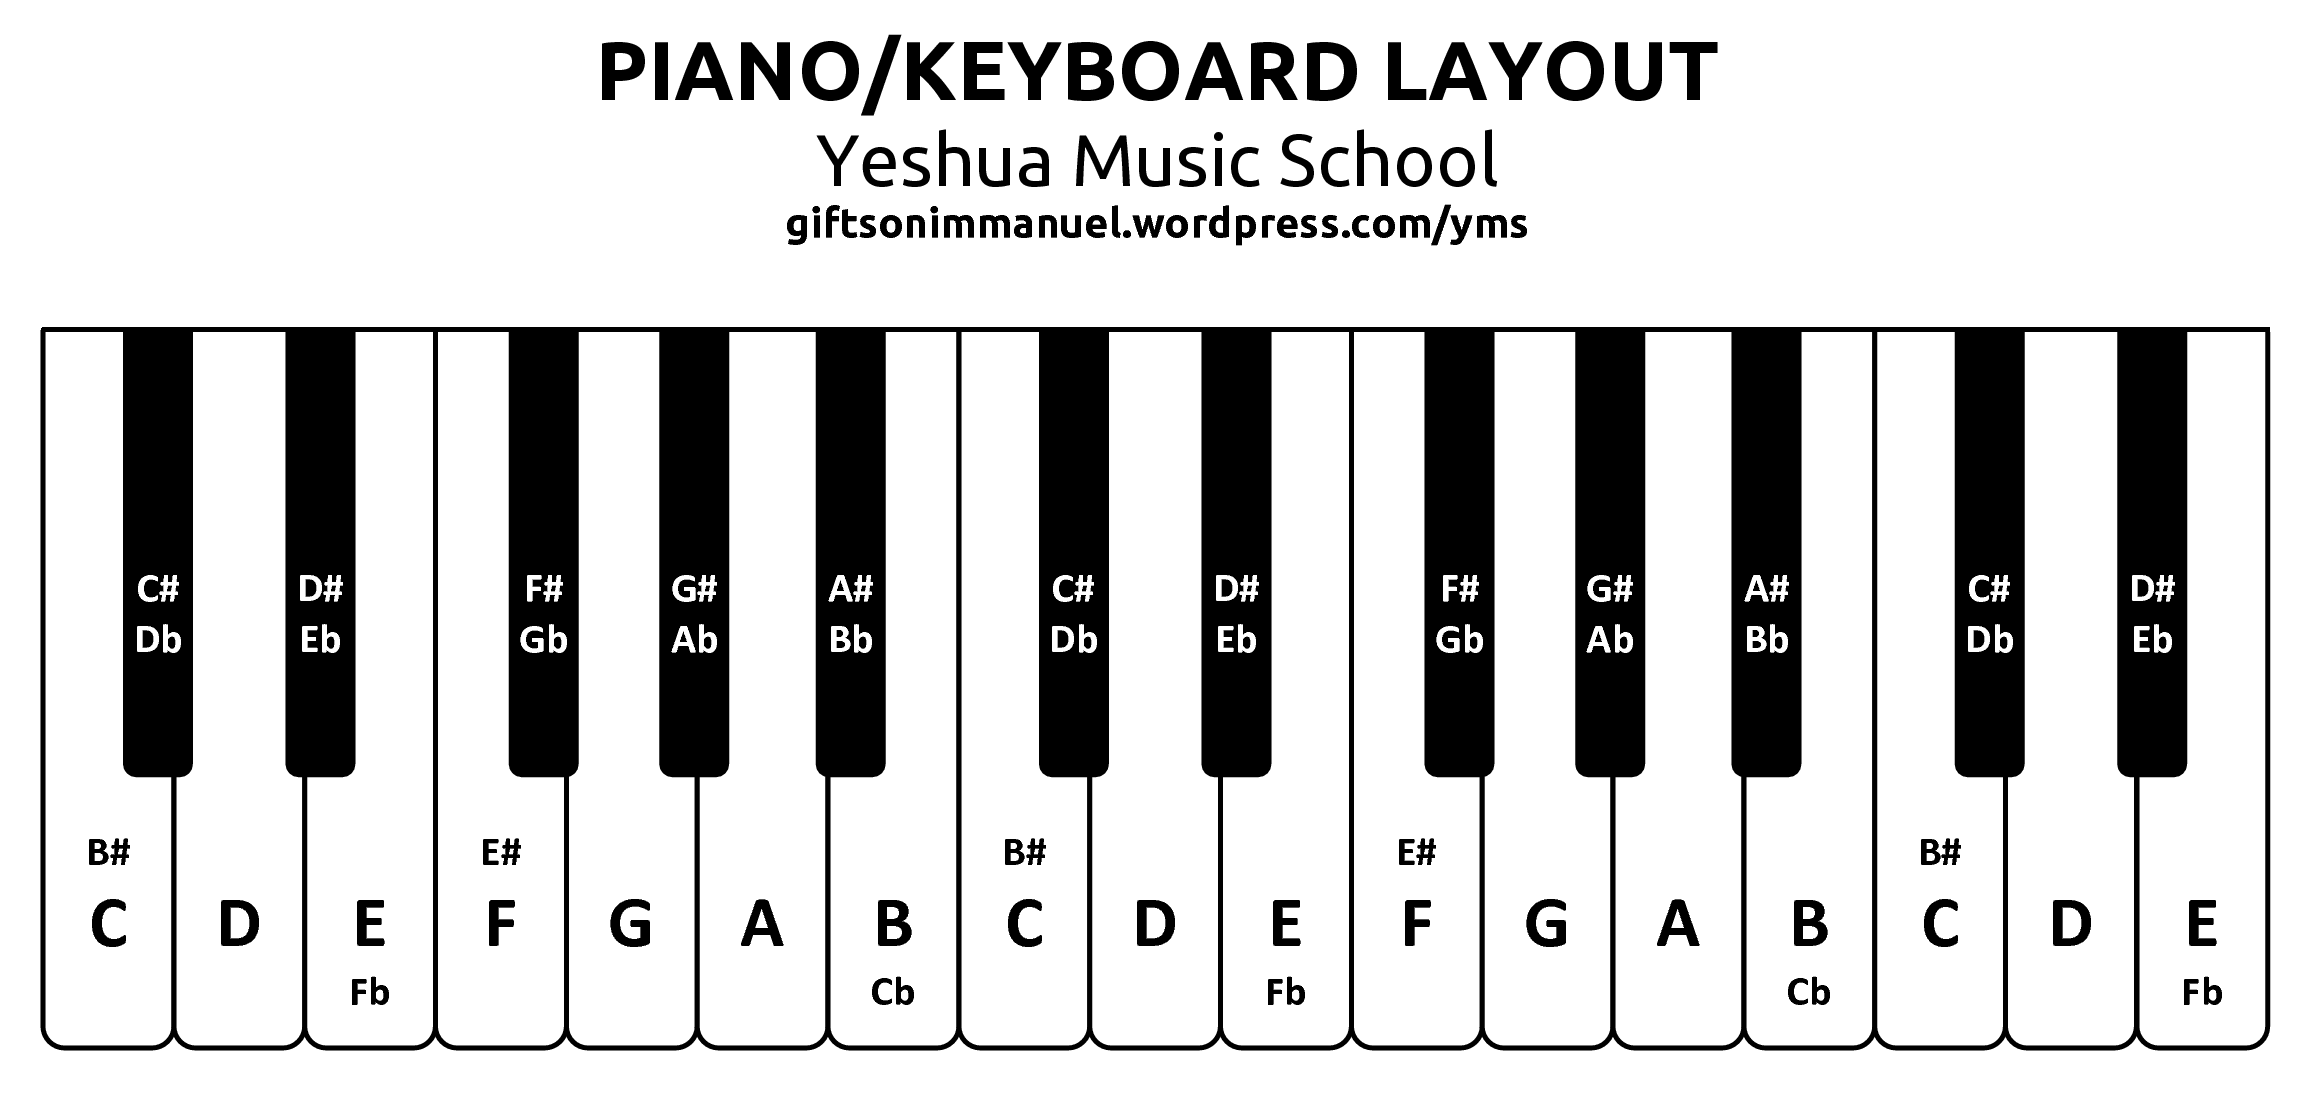 notes on piano keyboard diagram elodea leaf cell keys layout yahoo image search results studying